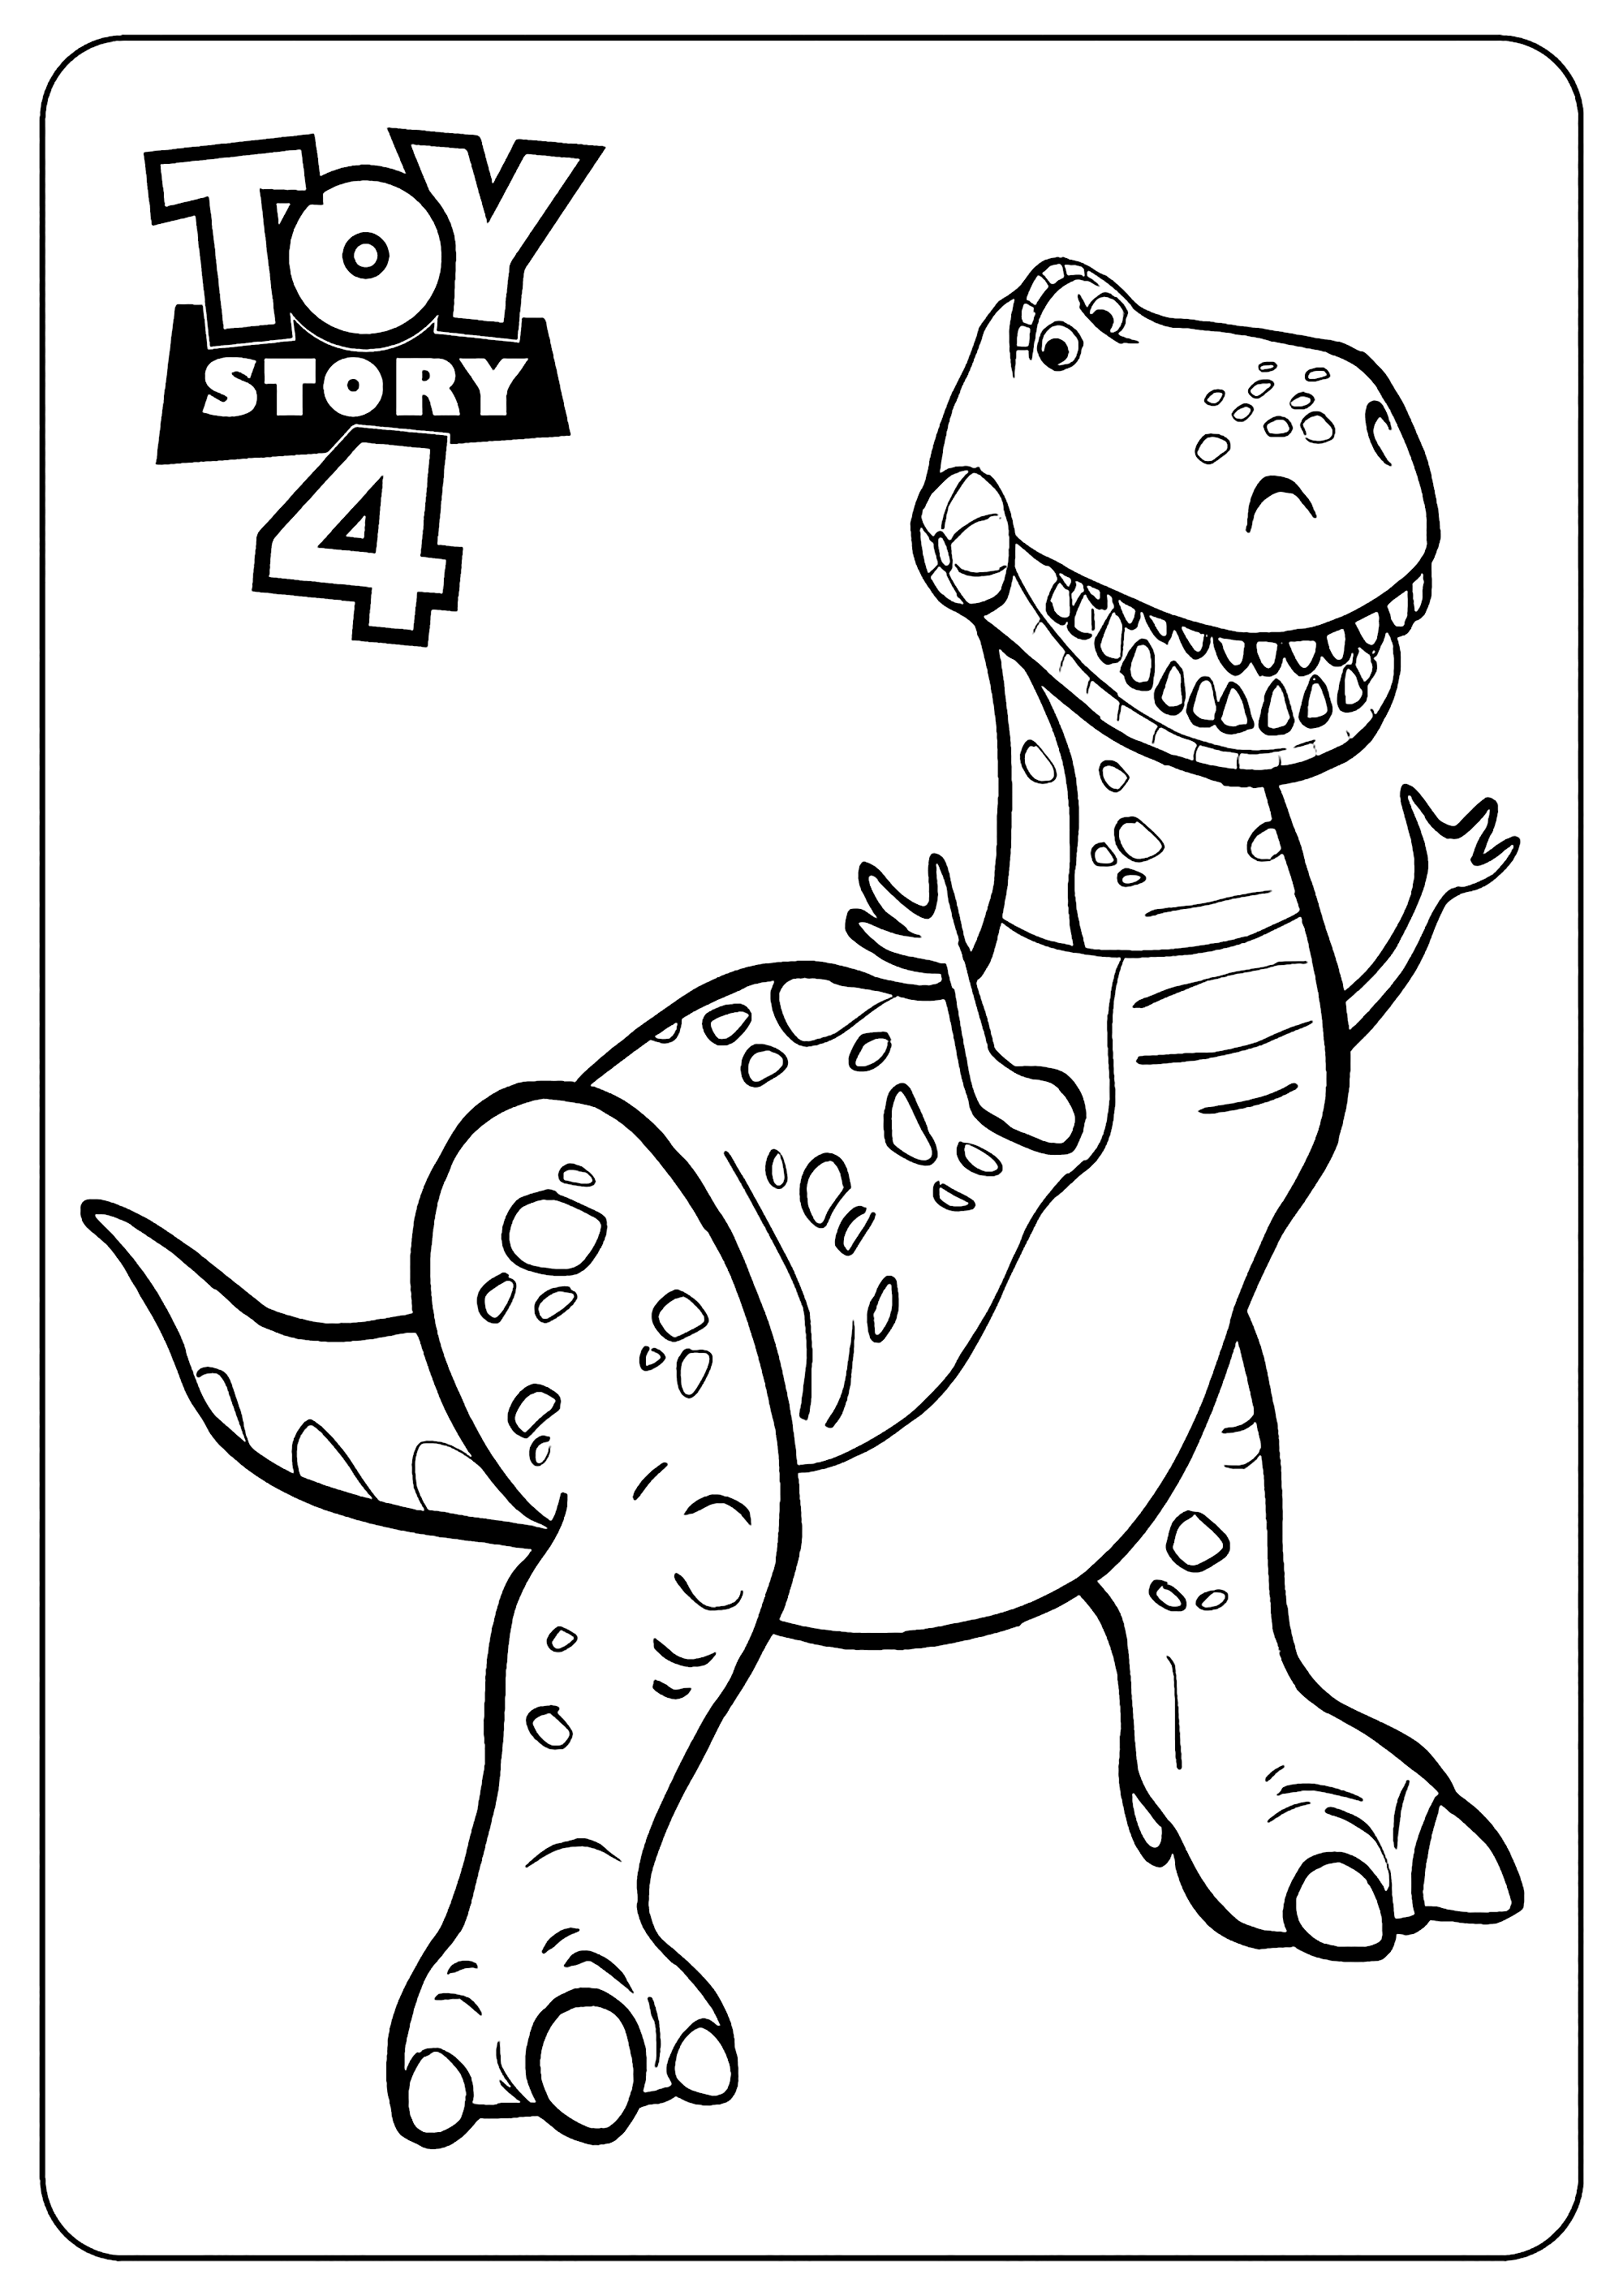 4 coloring sheet number coloring pages coloring pages 4 sheet coloring